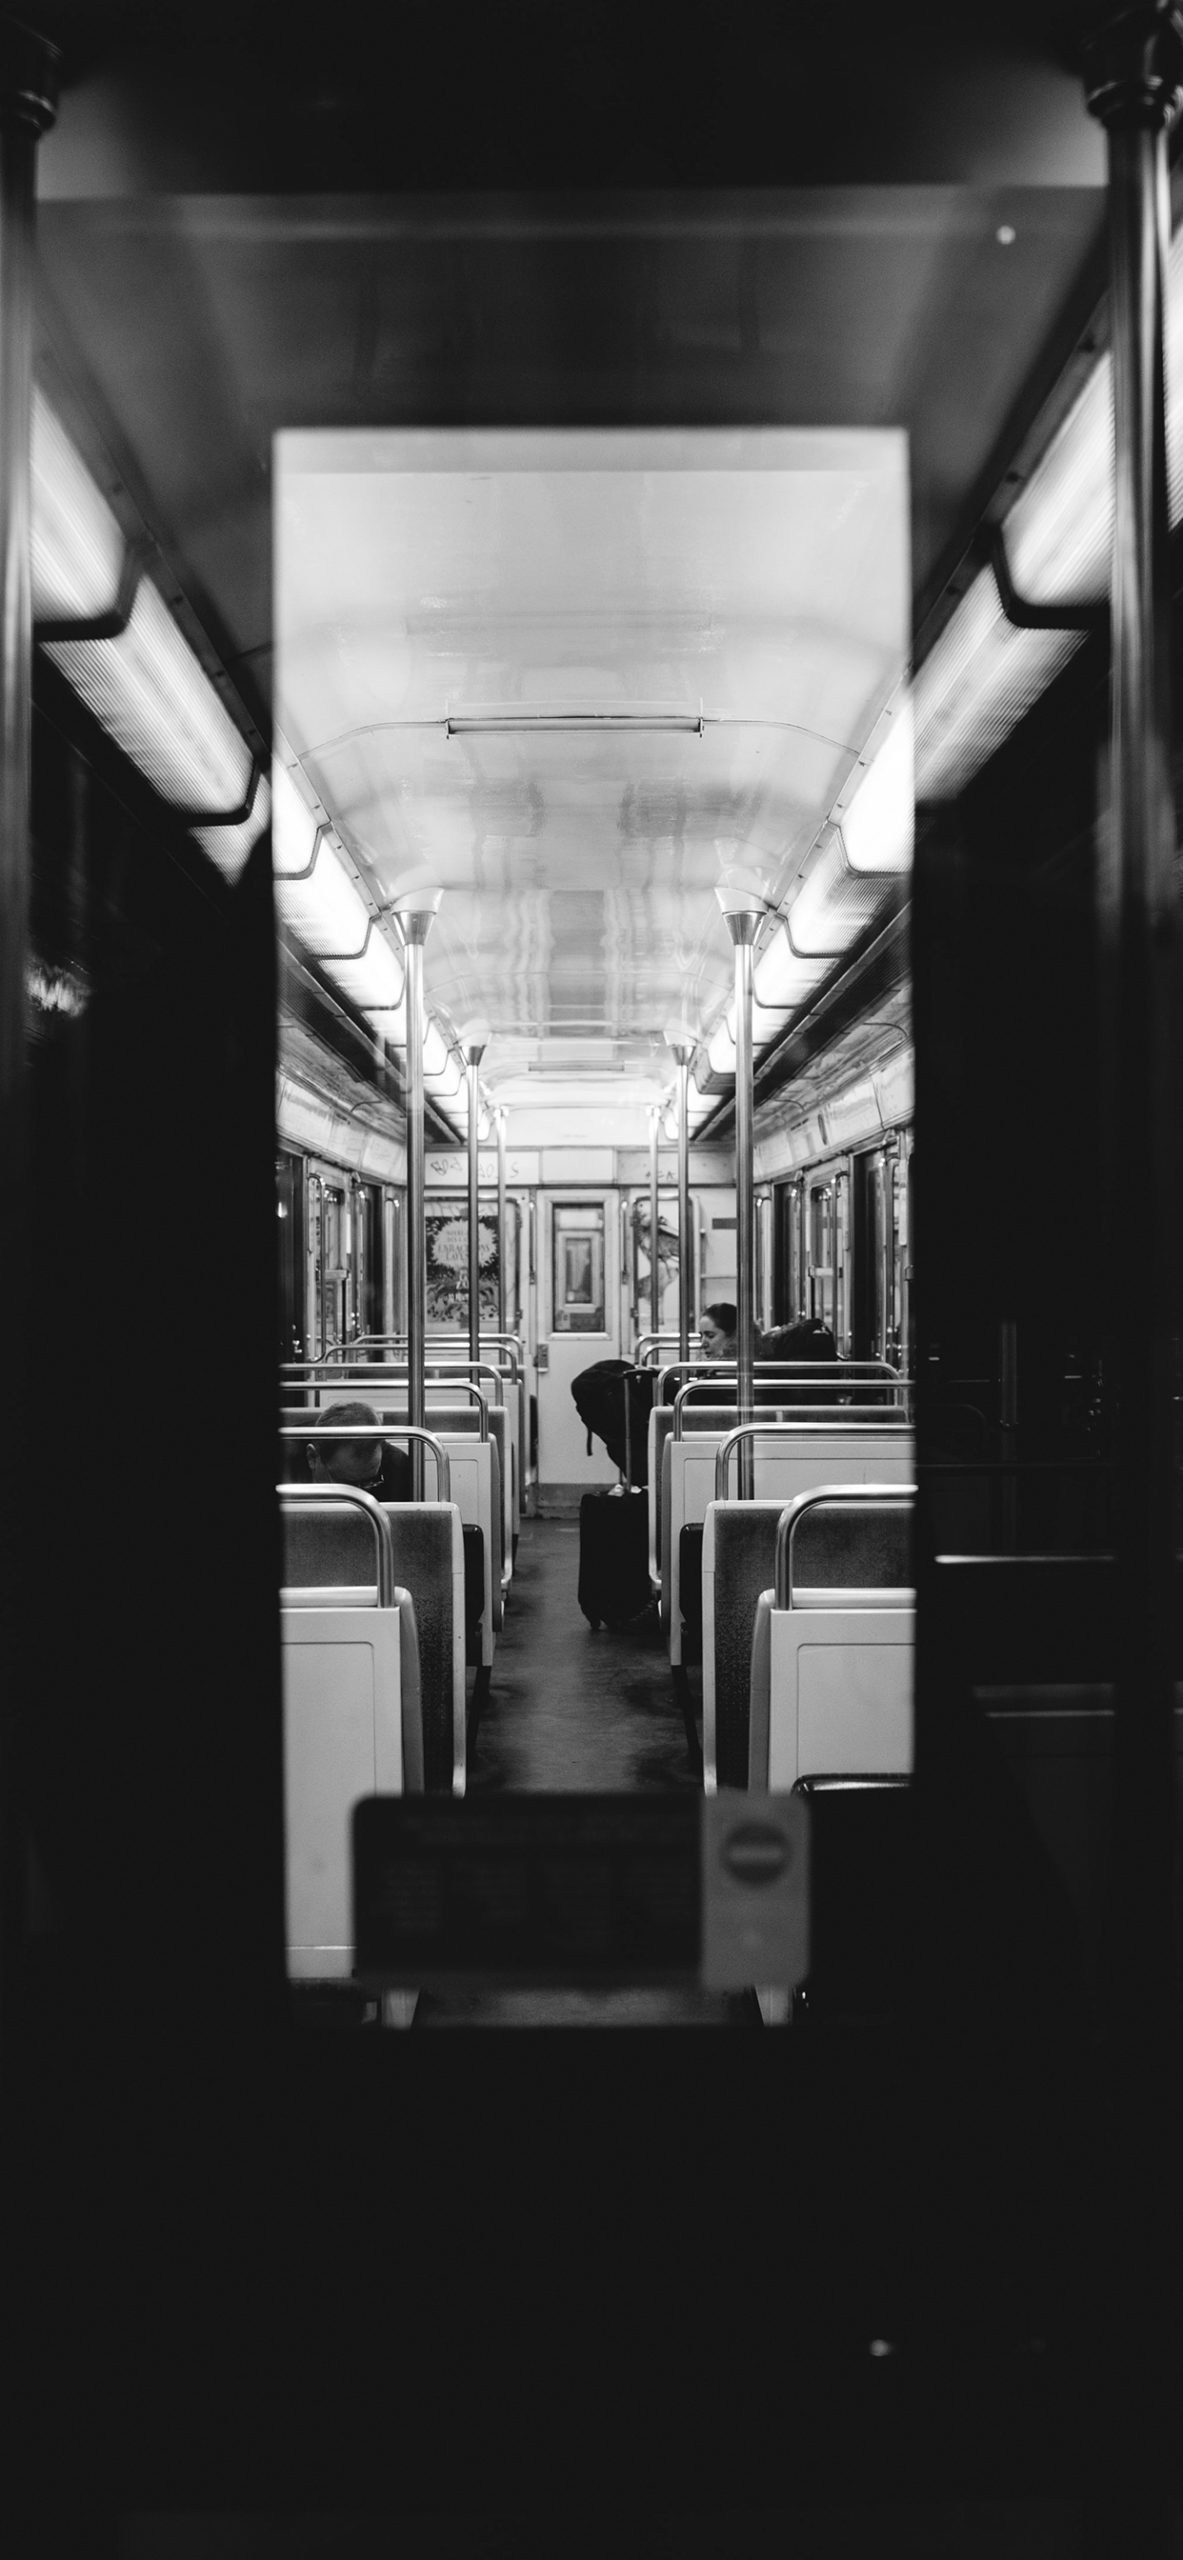 iphone wallpaper carriage subway scaled Subway